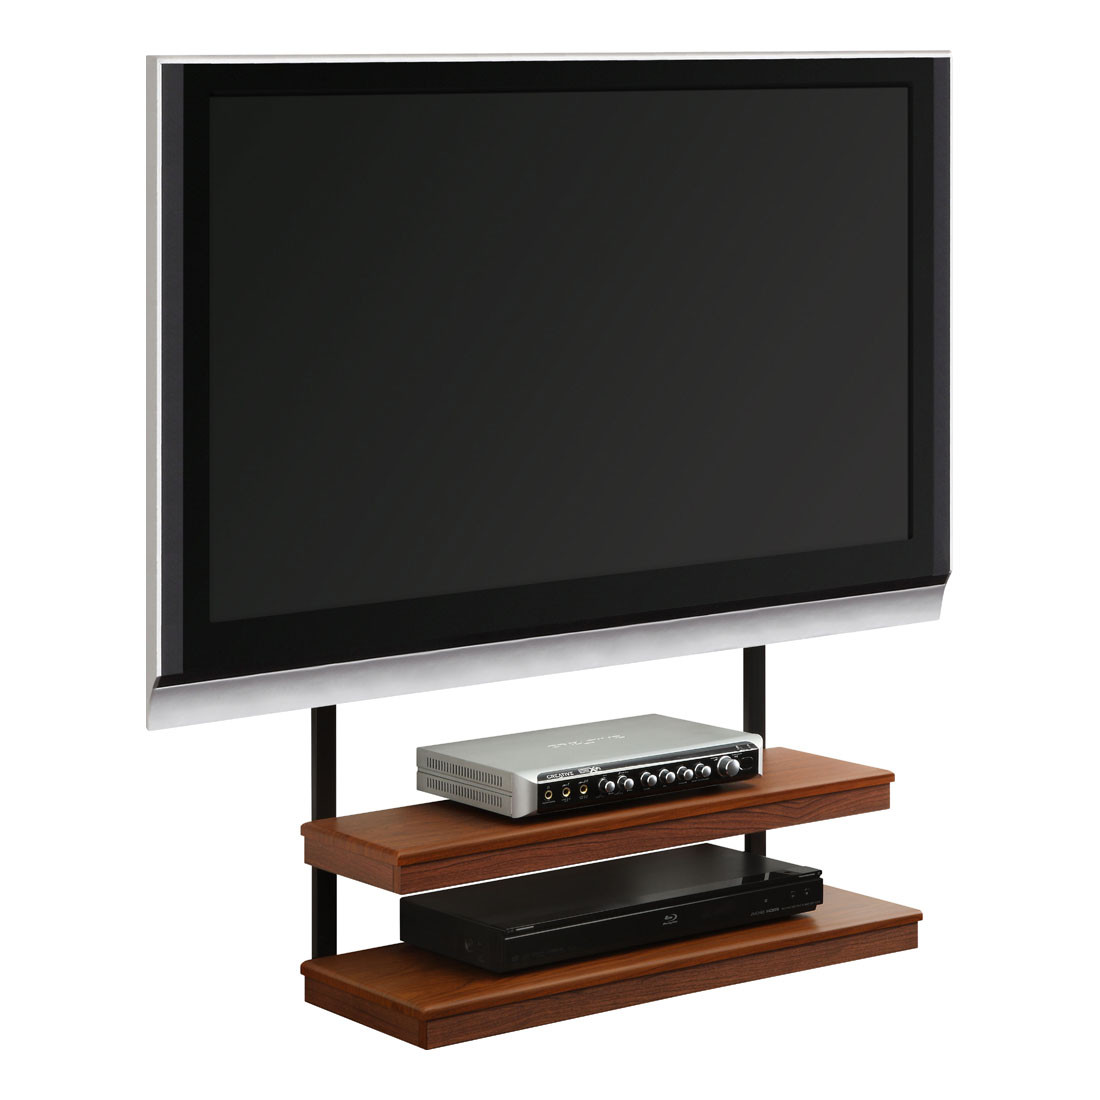 Best ideas about Wall Mount Tv Stand . Save or Pin Furniture Long Narrow Wall Mount Tv Stand With Two Now.